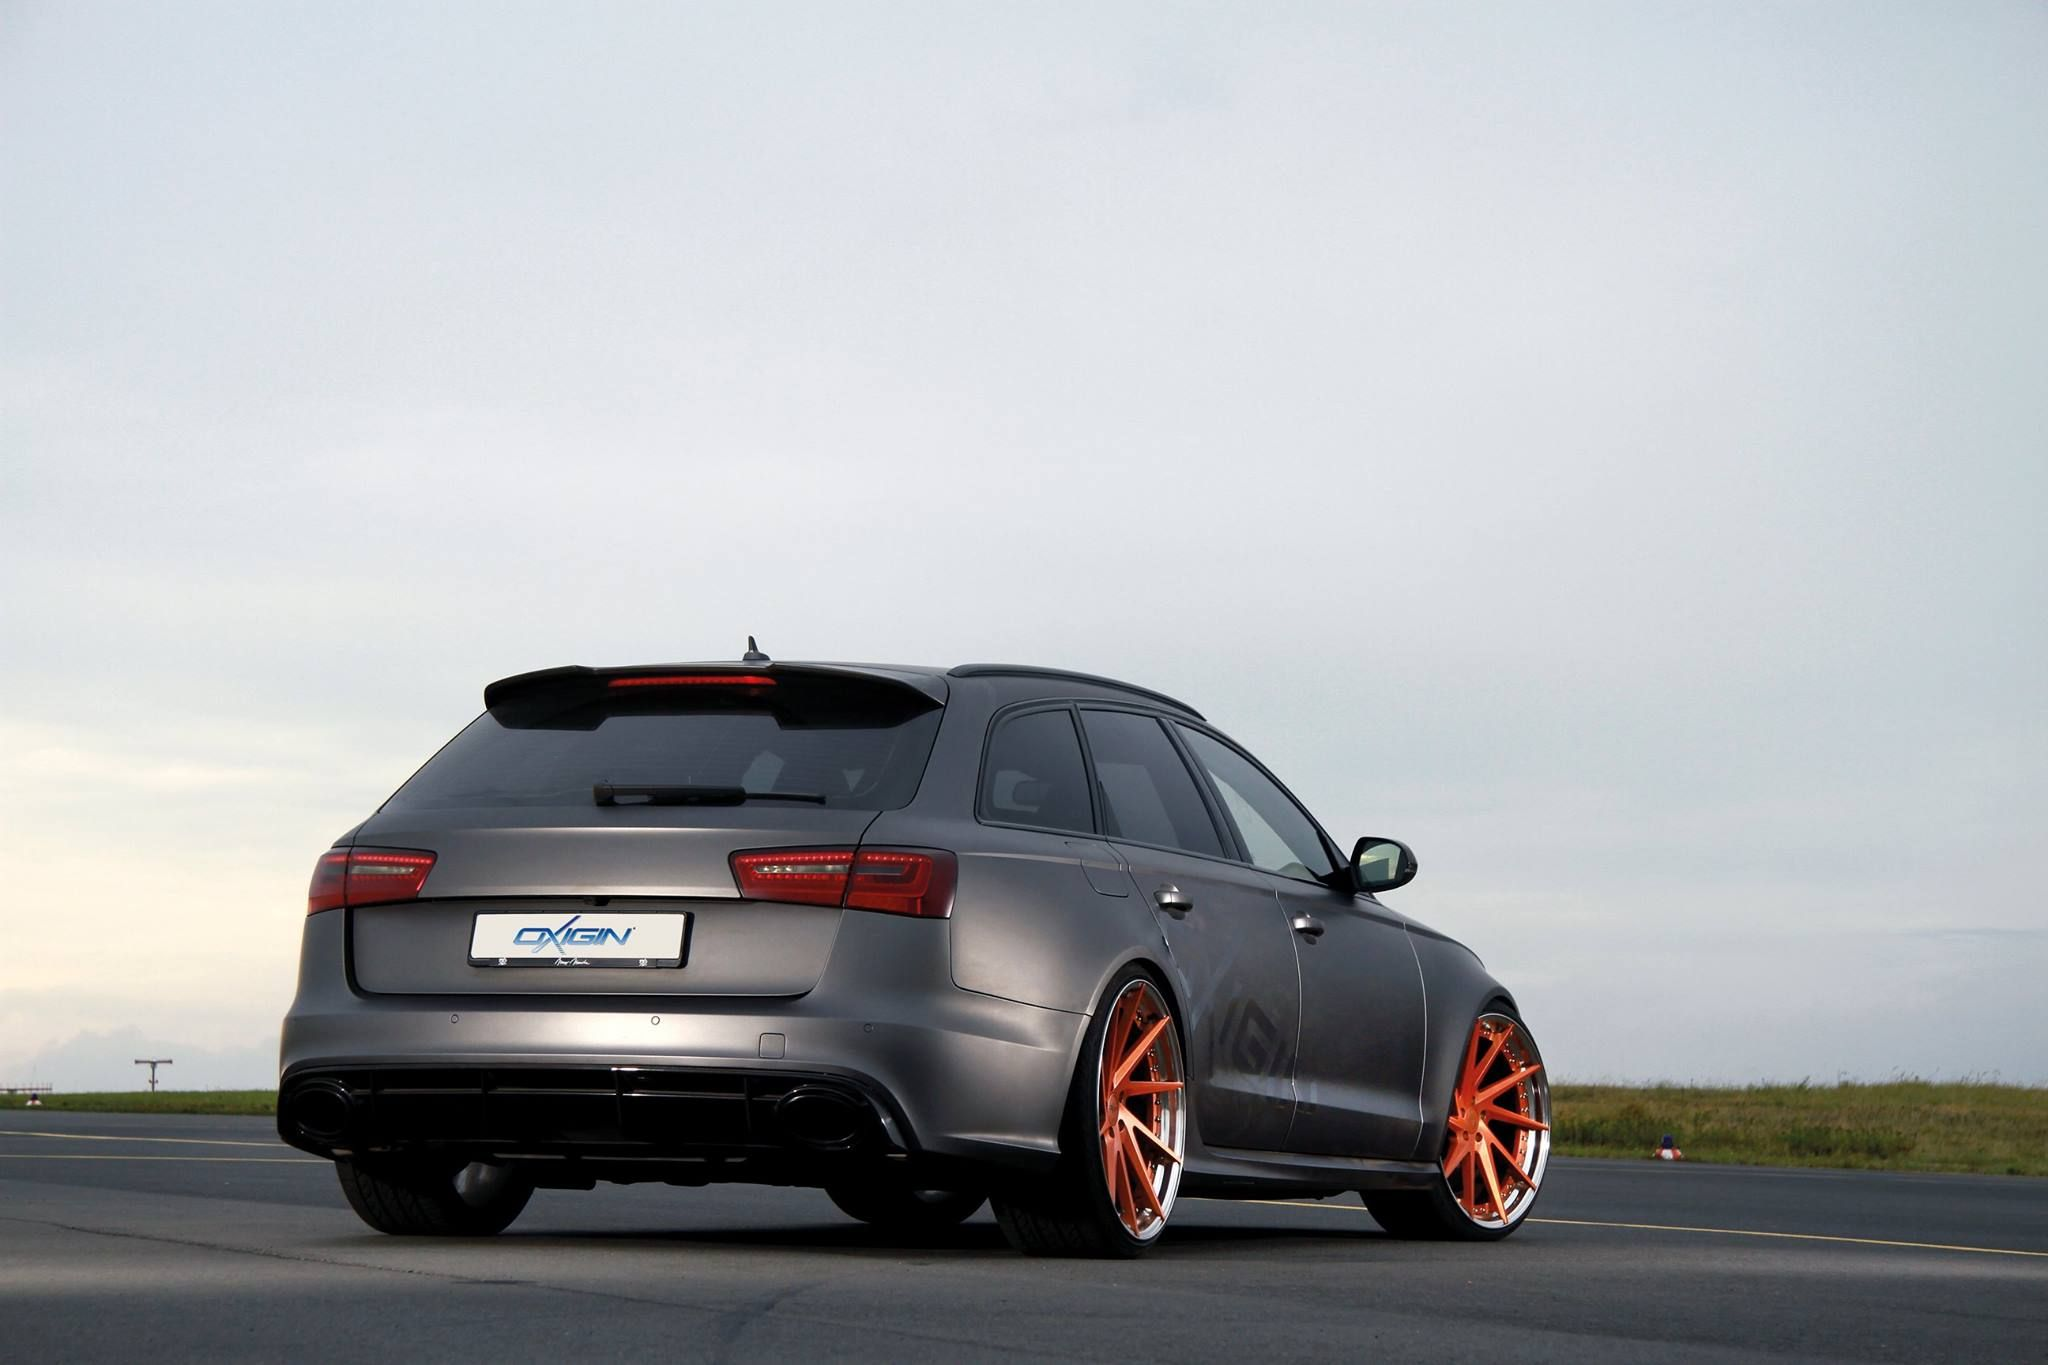 Oxigin mp1 felge mehrteilig audi rs4 avant wheelporn wheels tuning felgen